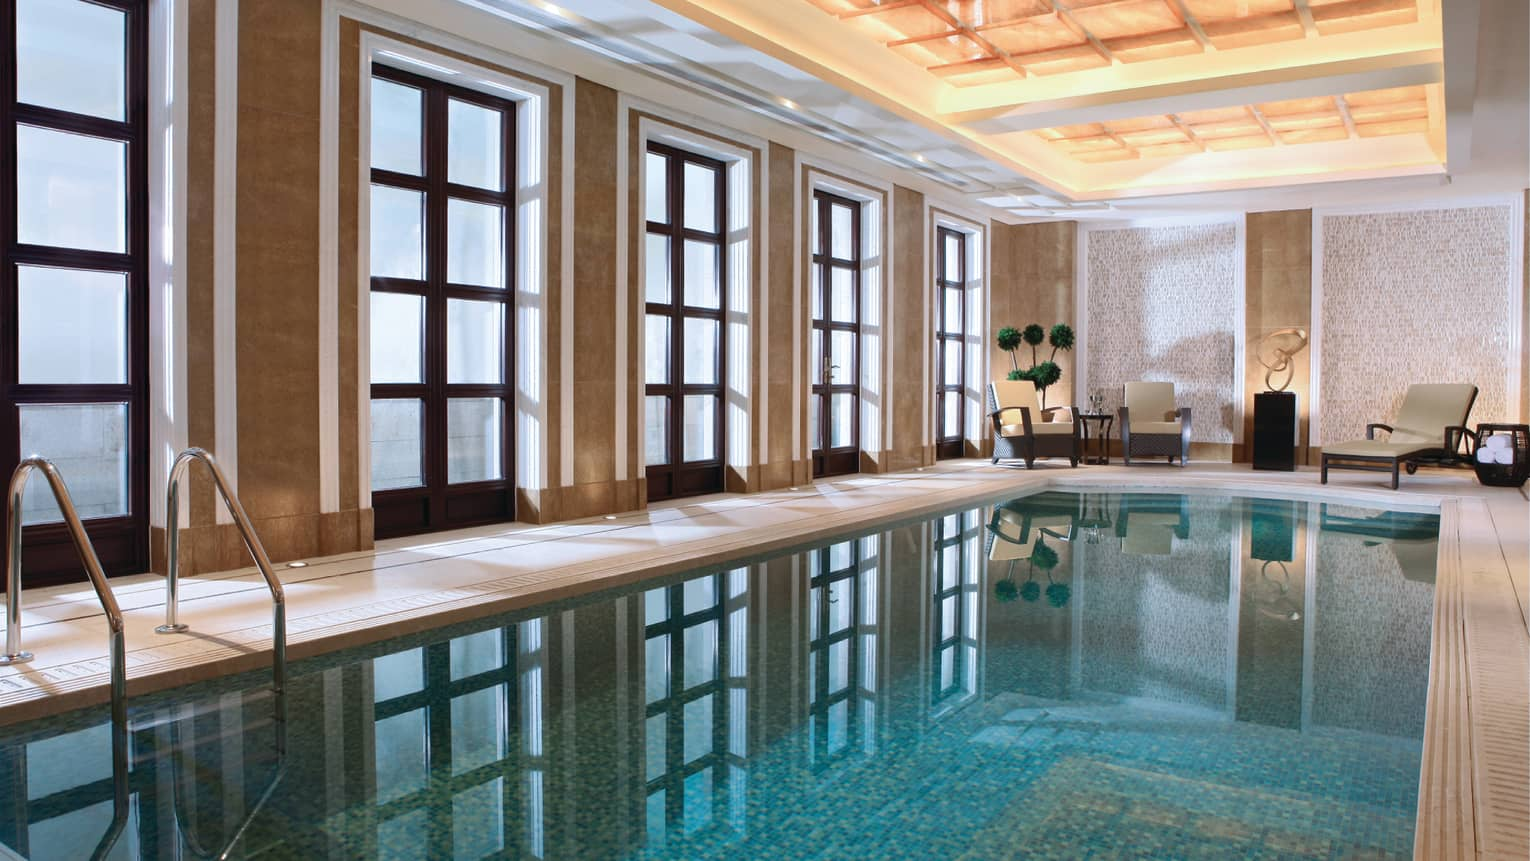 Floor-to-ceiling windows reflecting on long indoor swimming pool